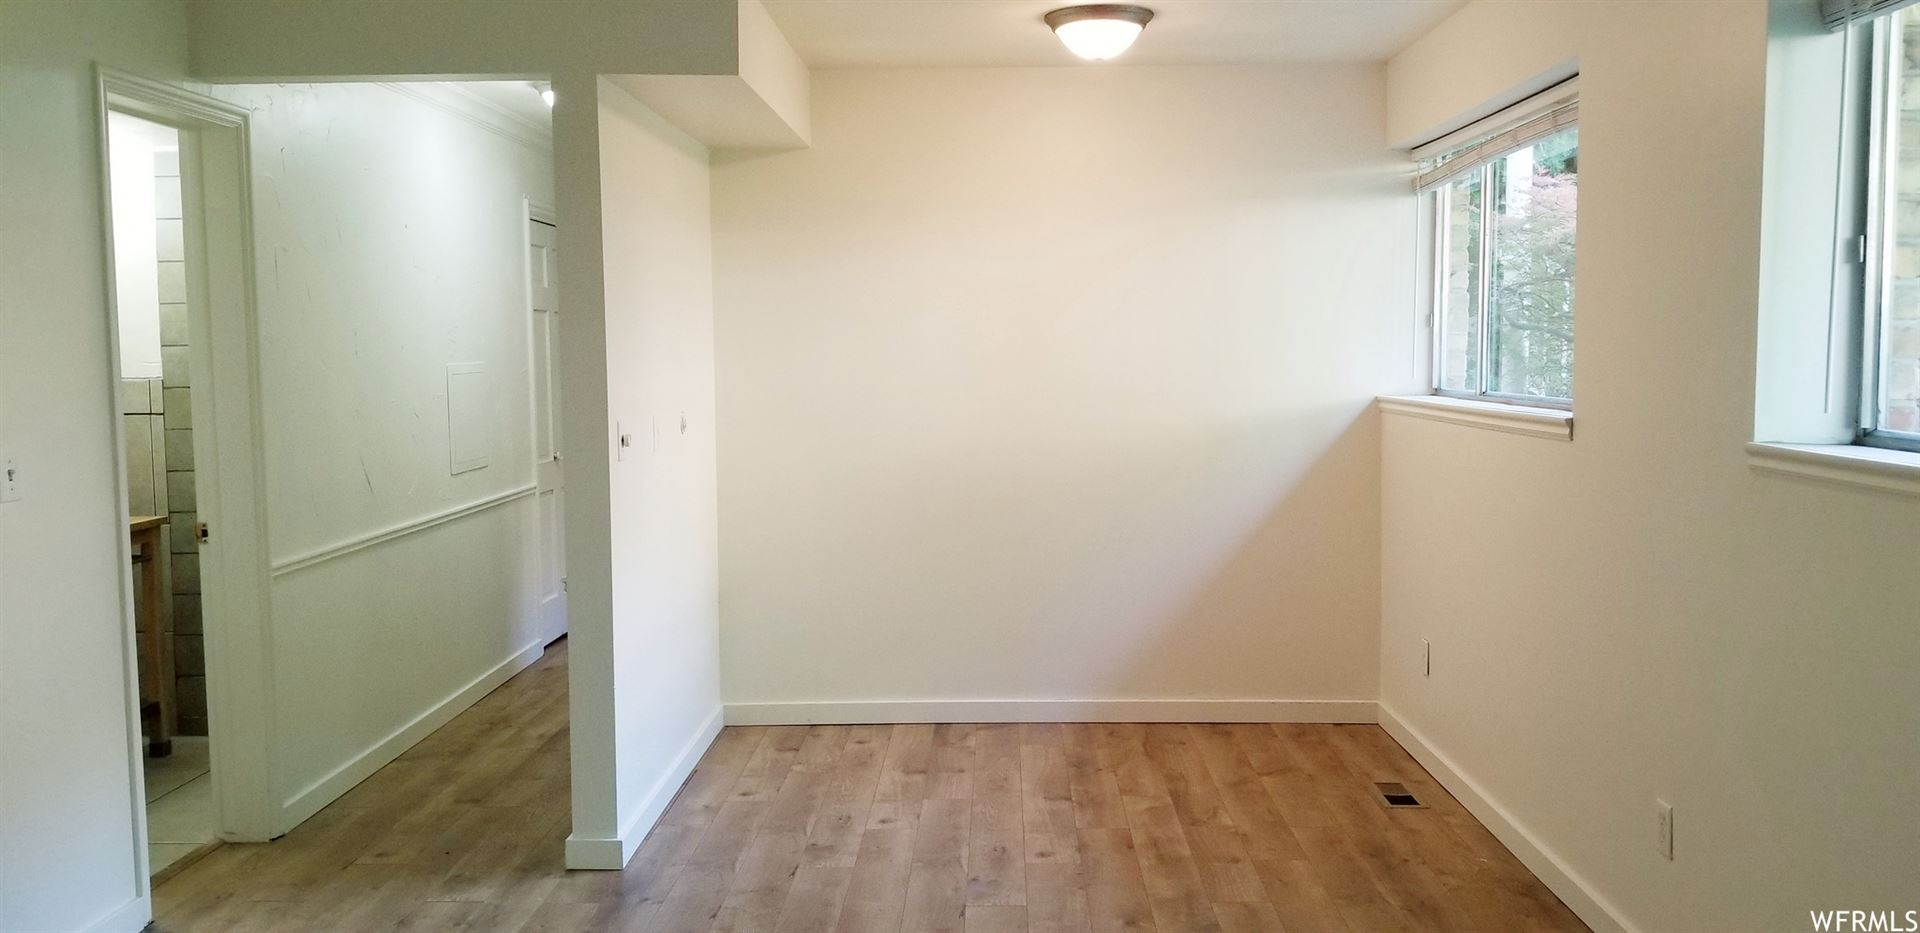 Photo of 2220 E MURRAY HOLLADAY S RD #321, Holladay, UT 84117 (MLS # 1755990)